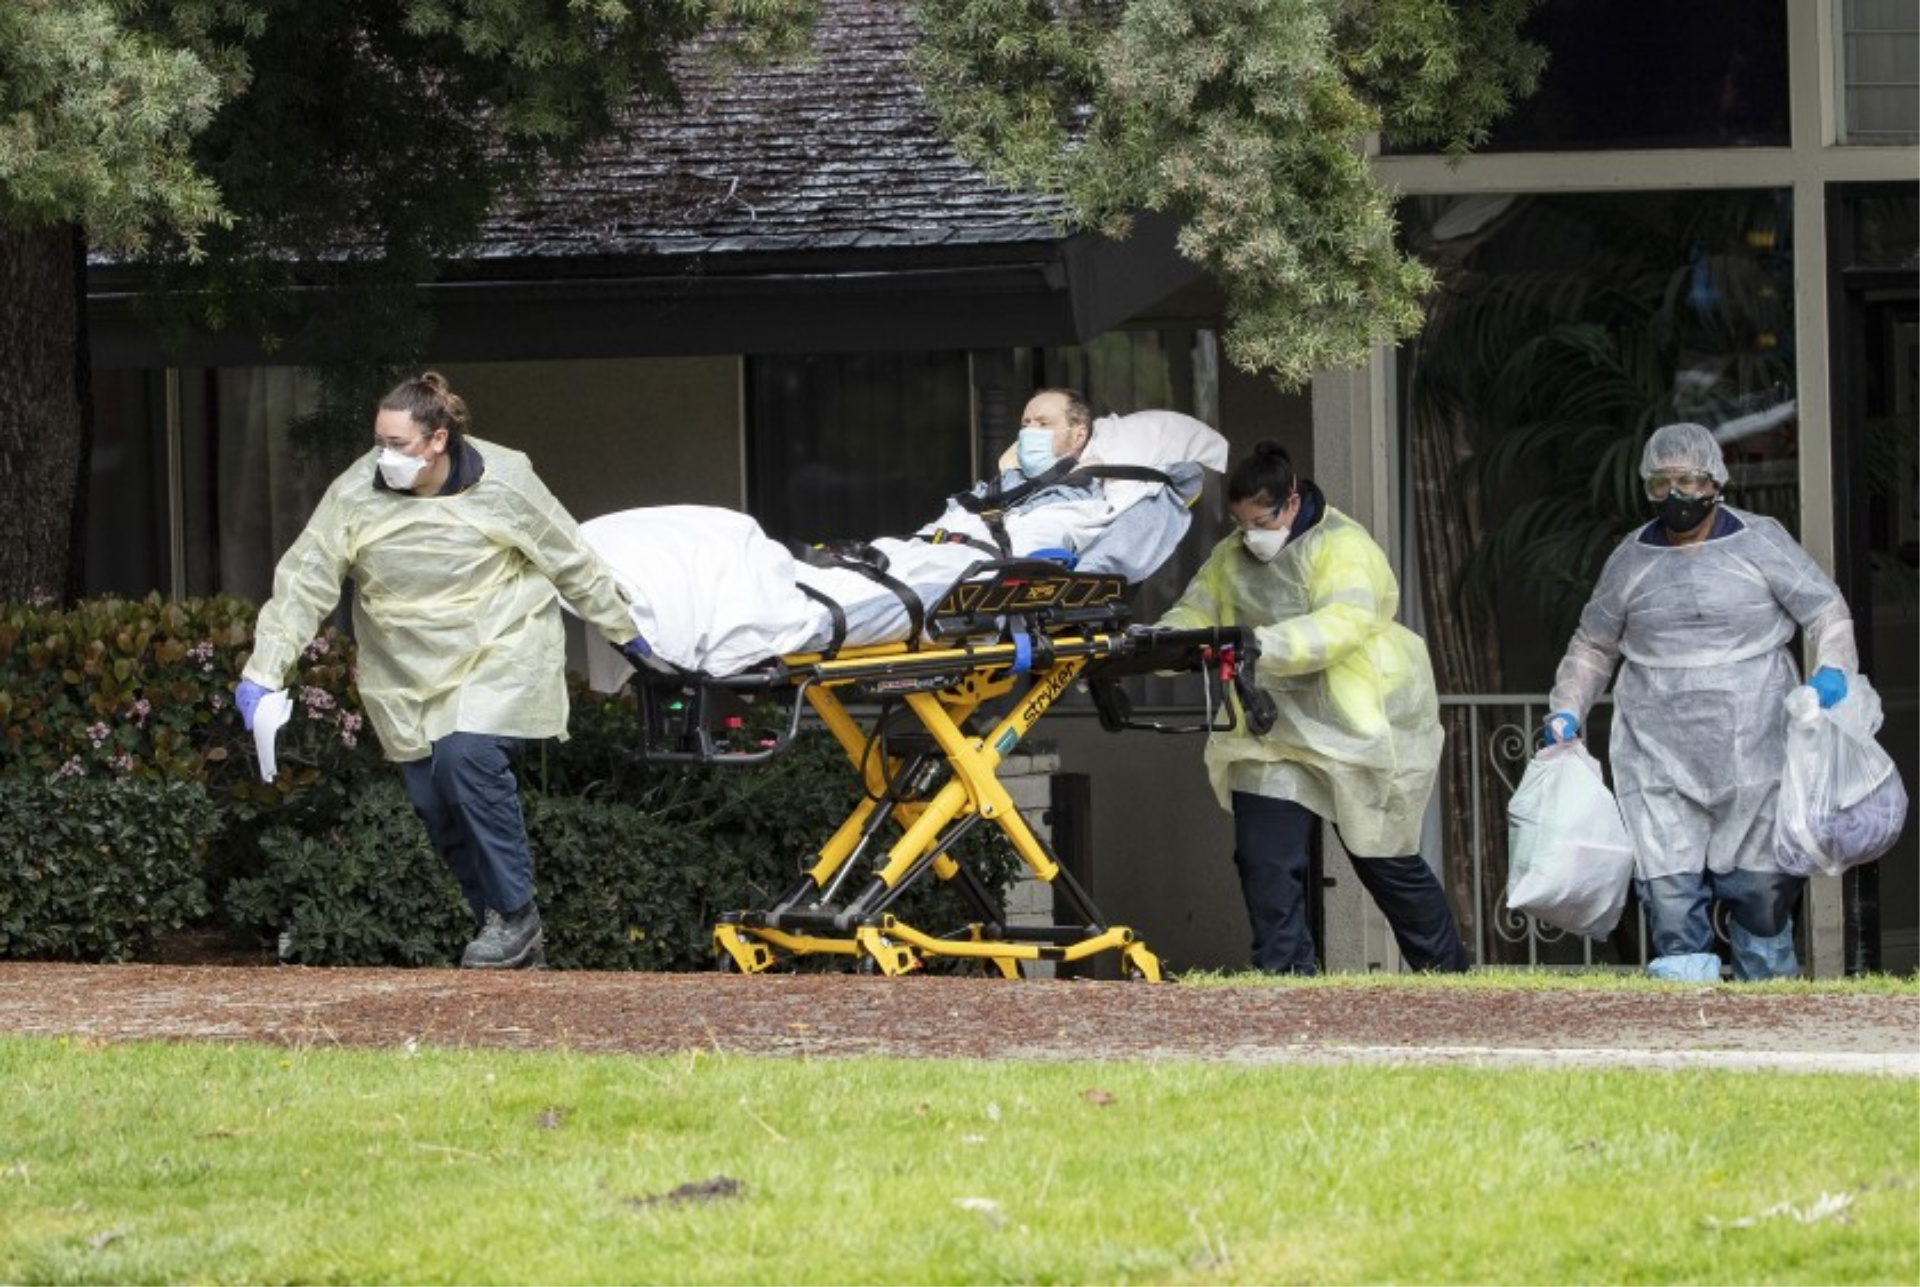 Patients are moved from the Magnolia Rehabilitation and Nursing Center in Riverside after 13 staff members fail to show up for work.(Gina Ferazzi / Los Angeles Times)